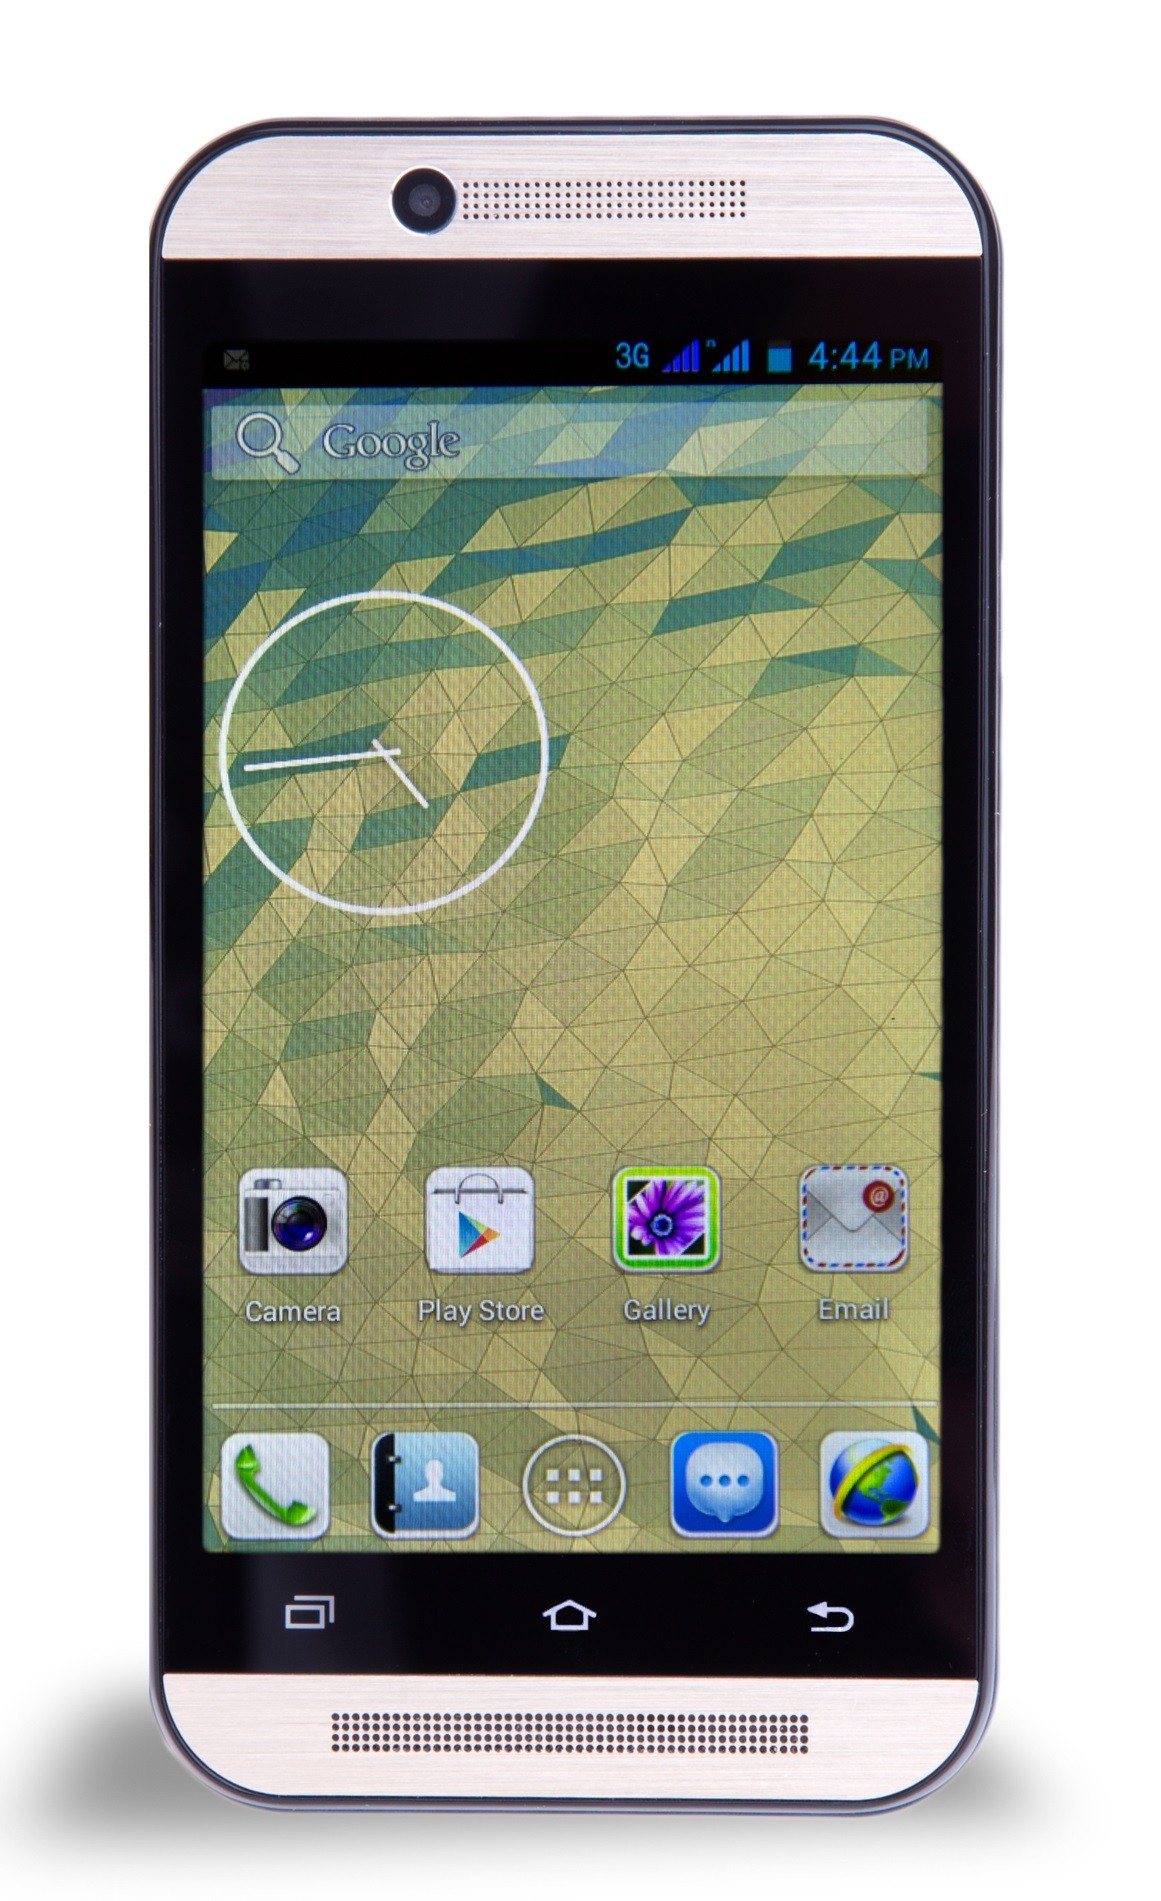 Big Screen Mobile Phone Is The Perfect Option For Seniors - Image 1